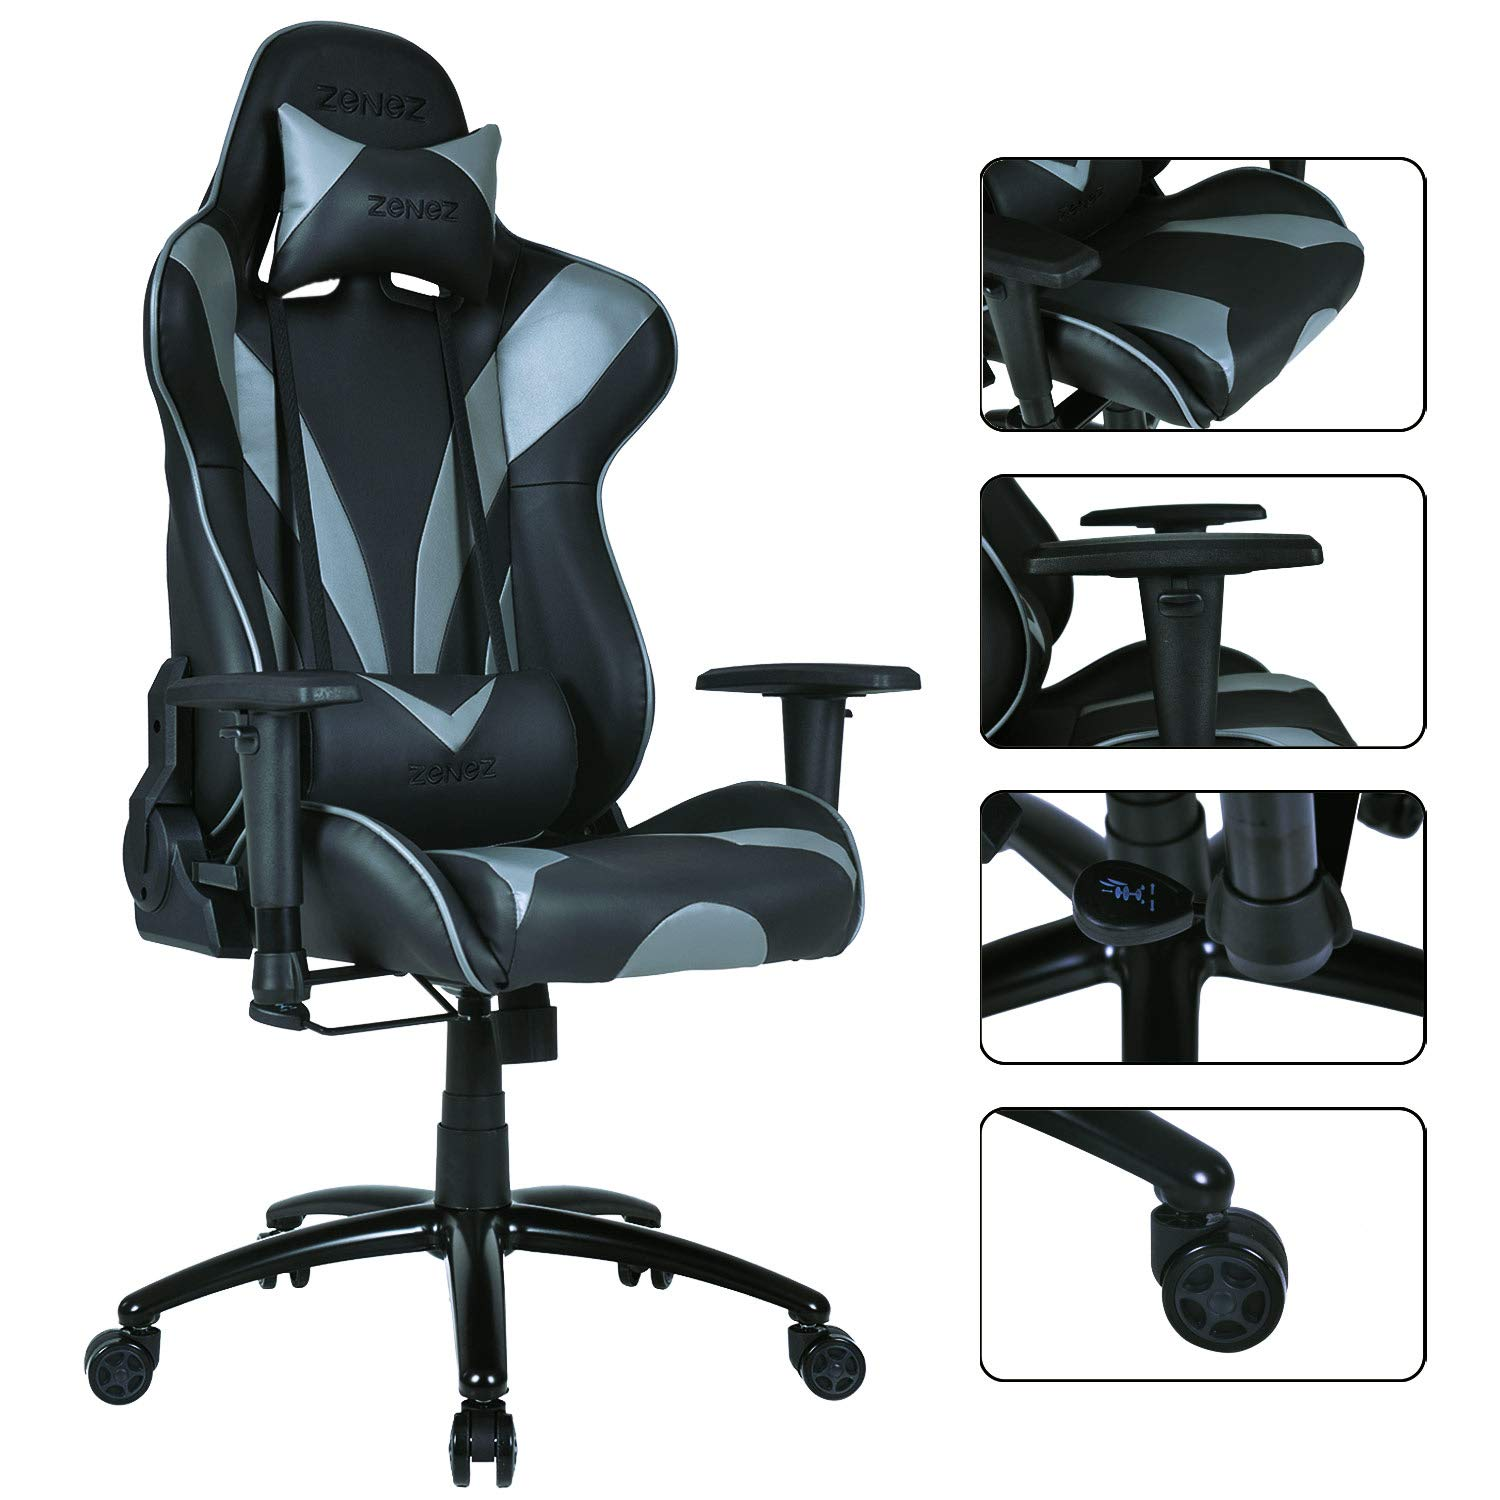 ZENEZ Gaming Chair Office Chair High Back Computer Chair Racing Ergonomic Backrest and Seat Height Adjustable Recliner Swivel Rocker with Headrest and Lumbar Pillow Large Size Black